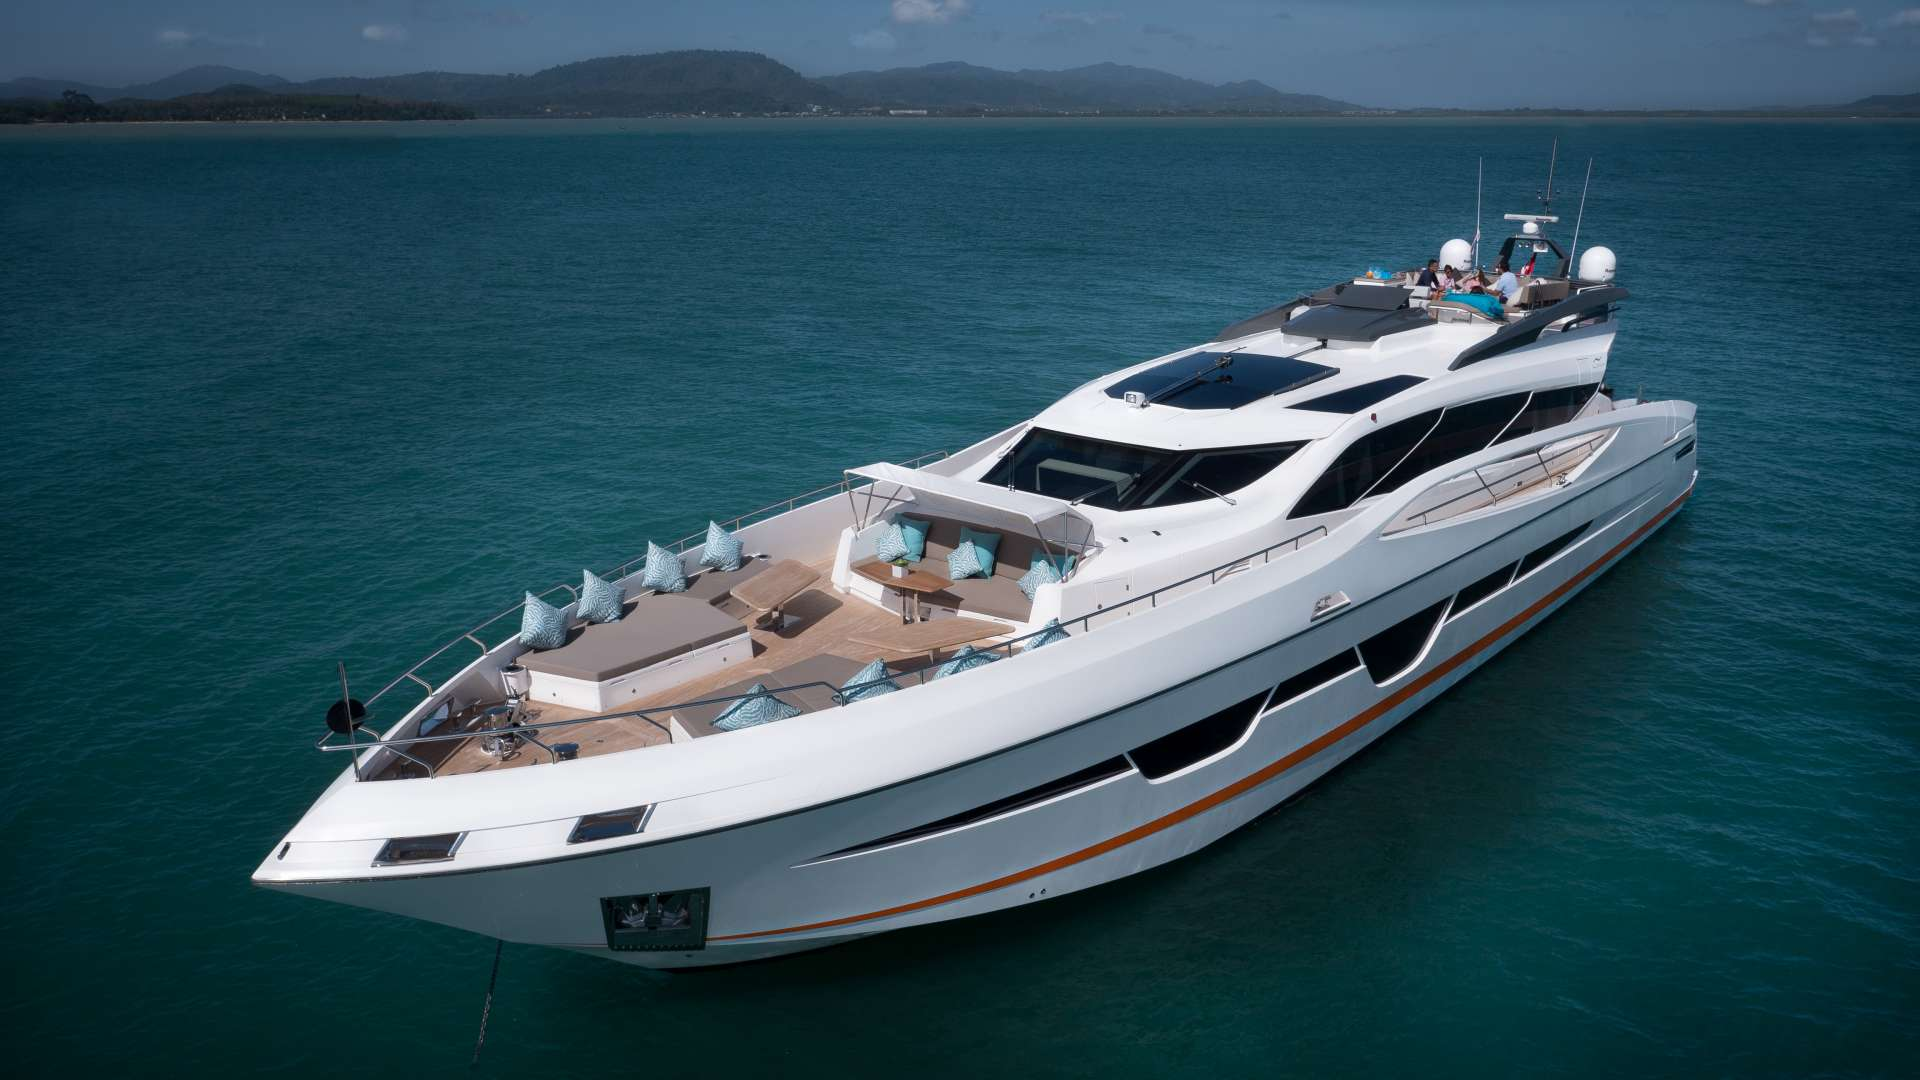 Charter with DOLCE VITA on compassyachtcharters.com